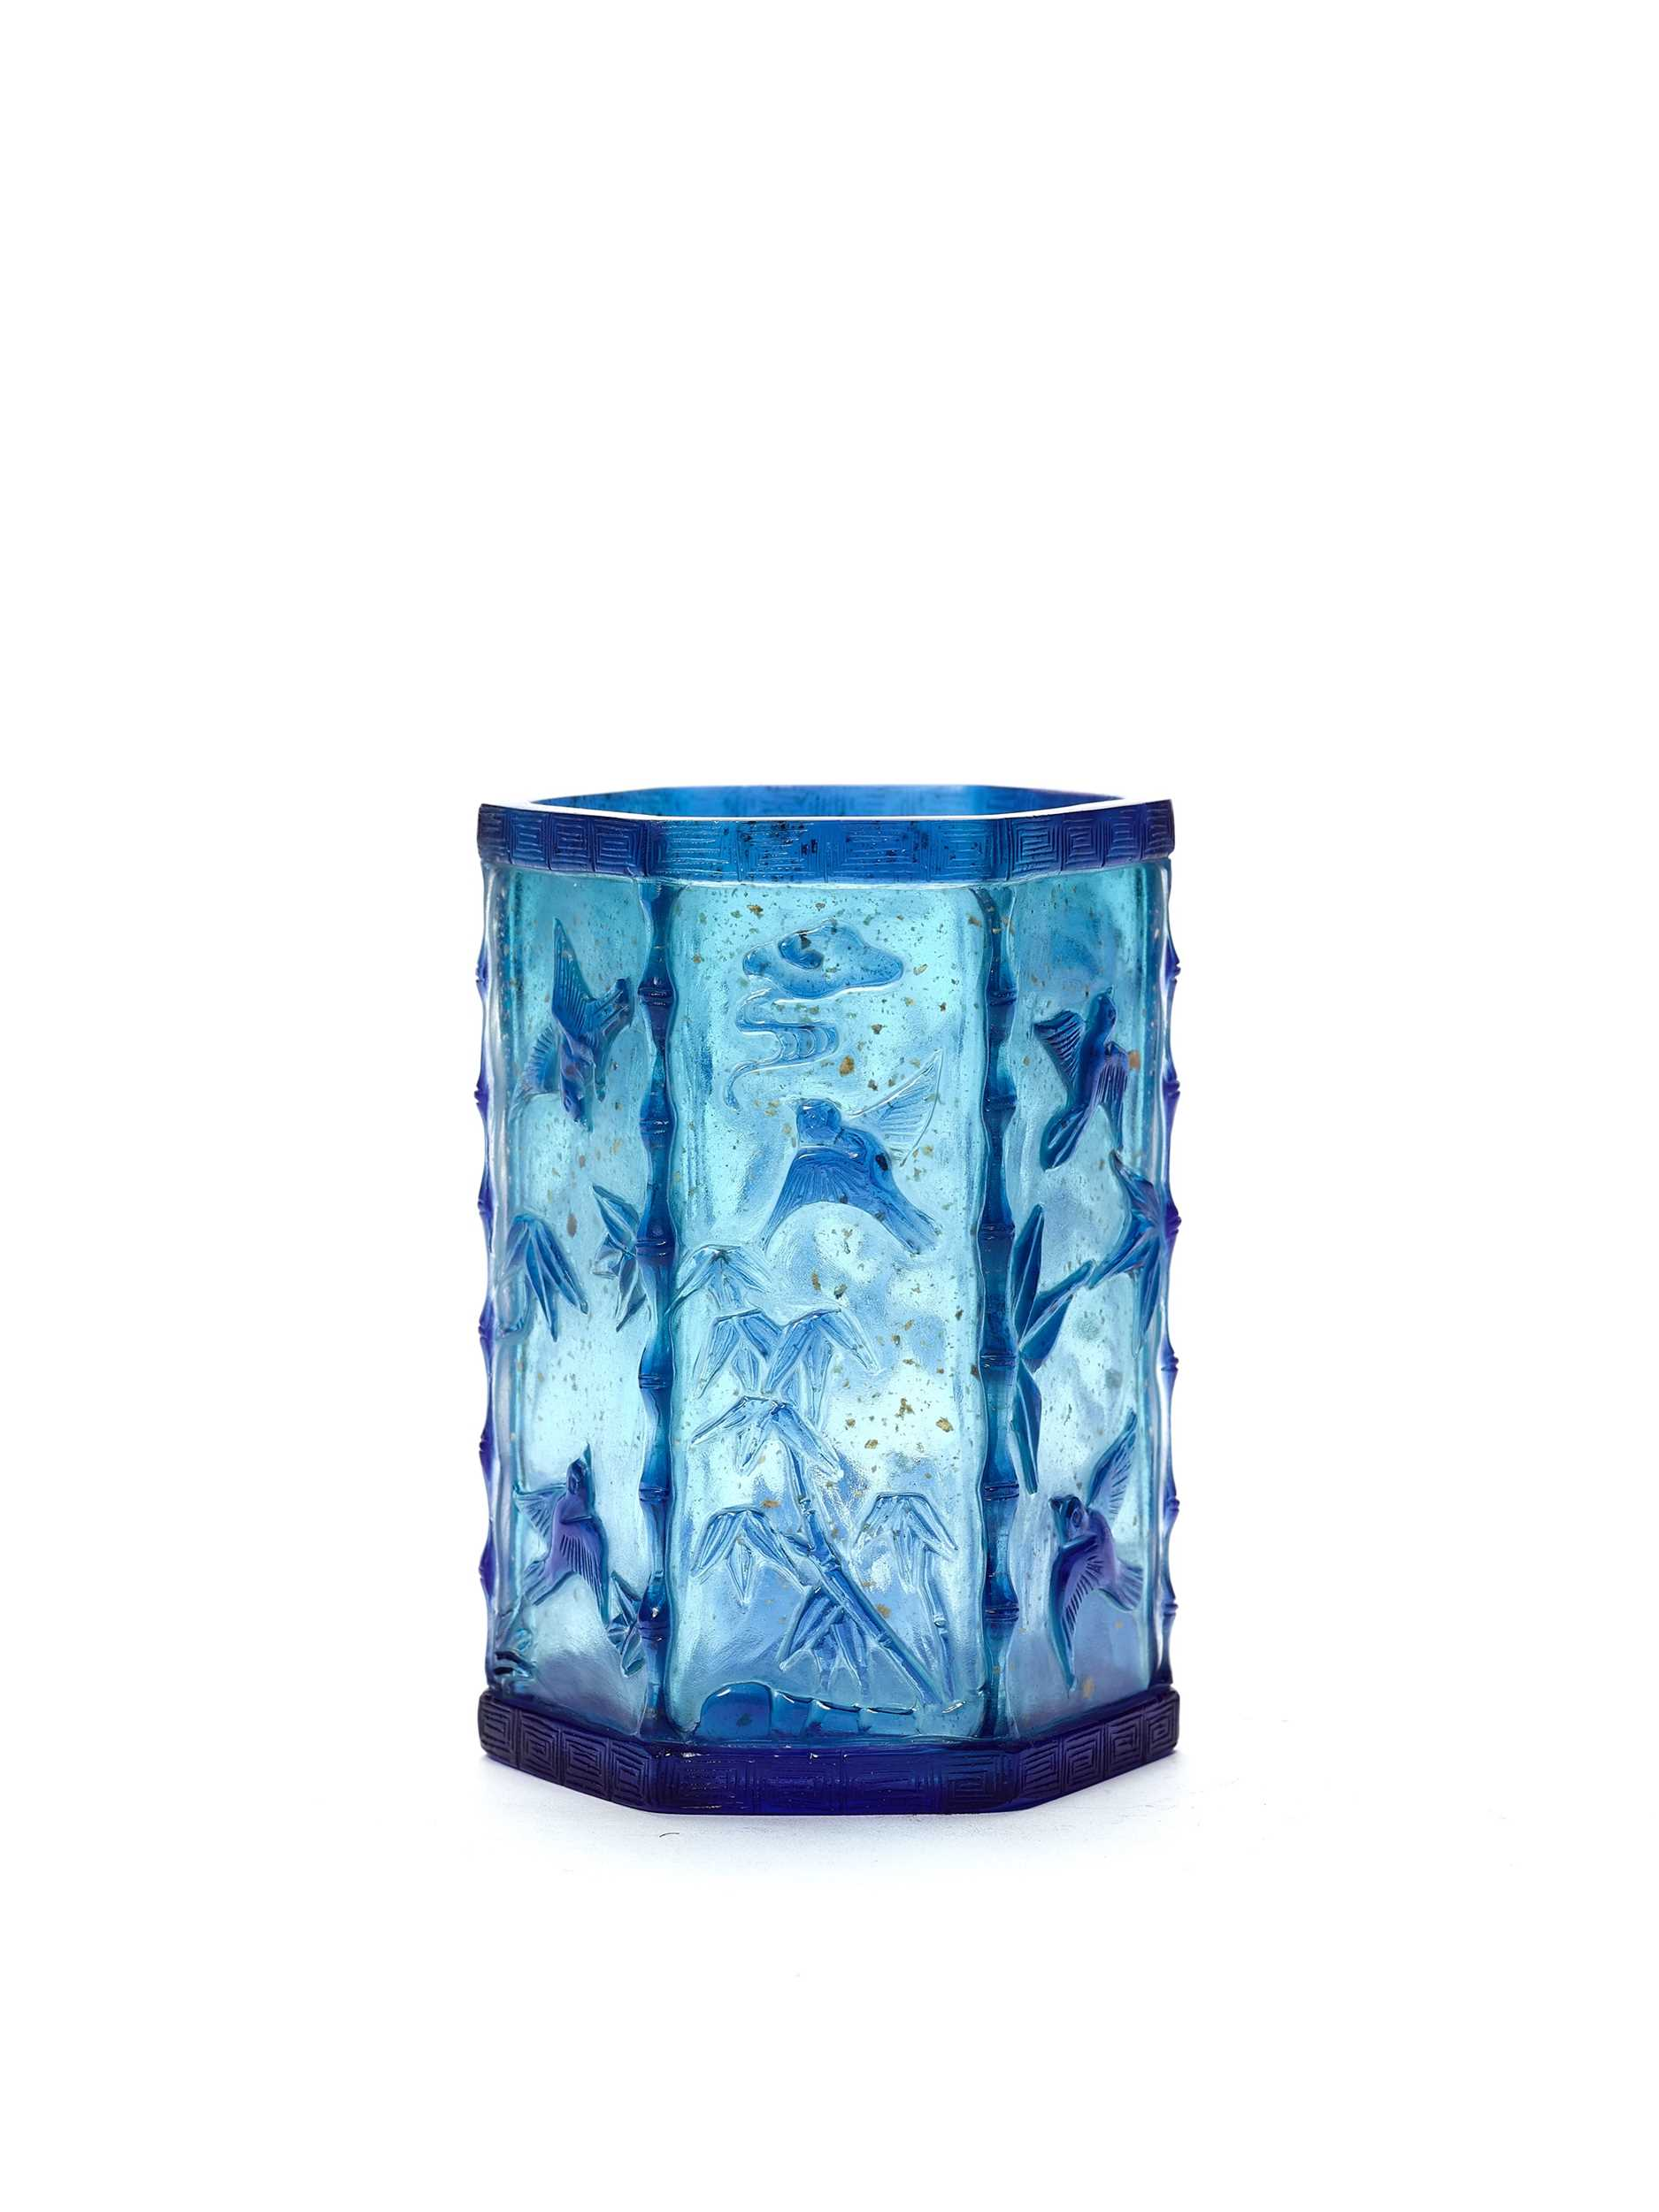 Lot 86 - A CARVED HEXAGONAL BLUE OVERLAY GLASS BRUSH POT, QING DYNASTY